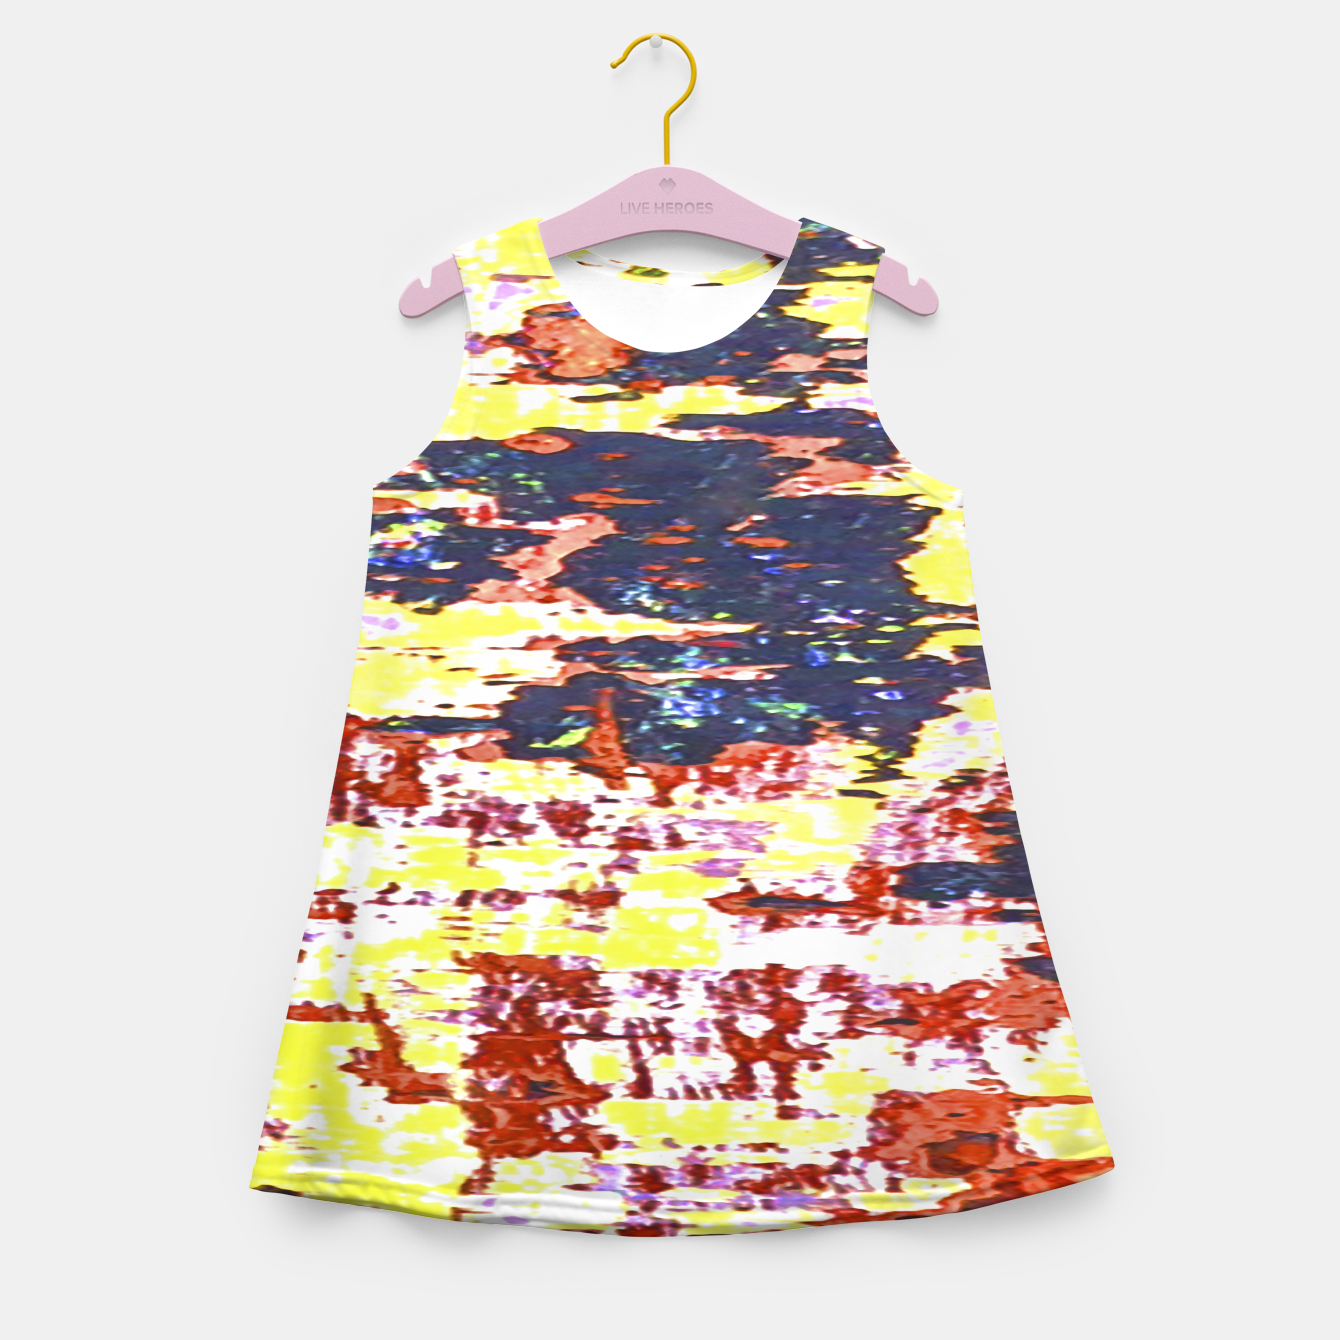 Zdjęcie Multicolored Abstract Grunge Texture Print Girl's summer dress - Live Heroes